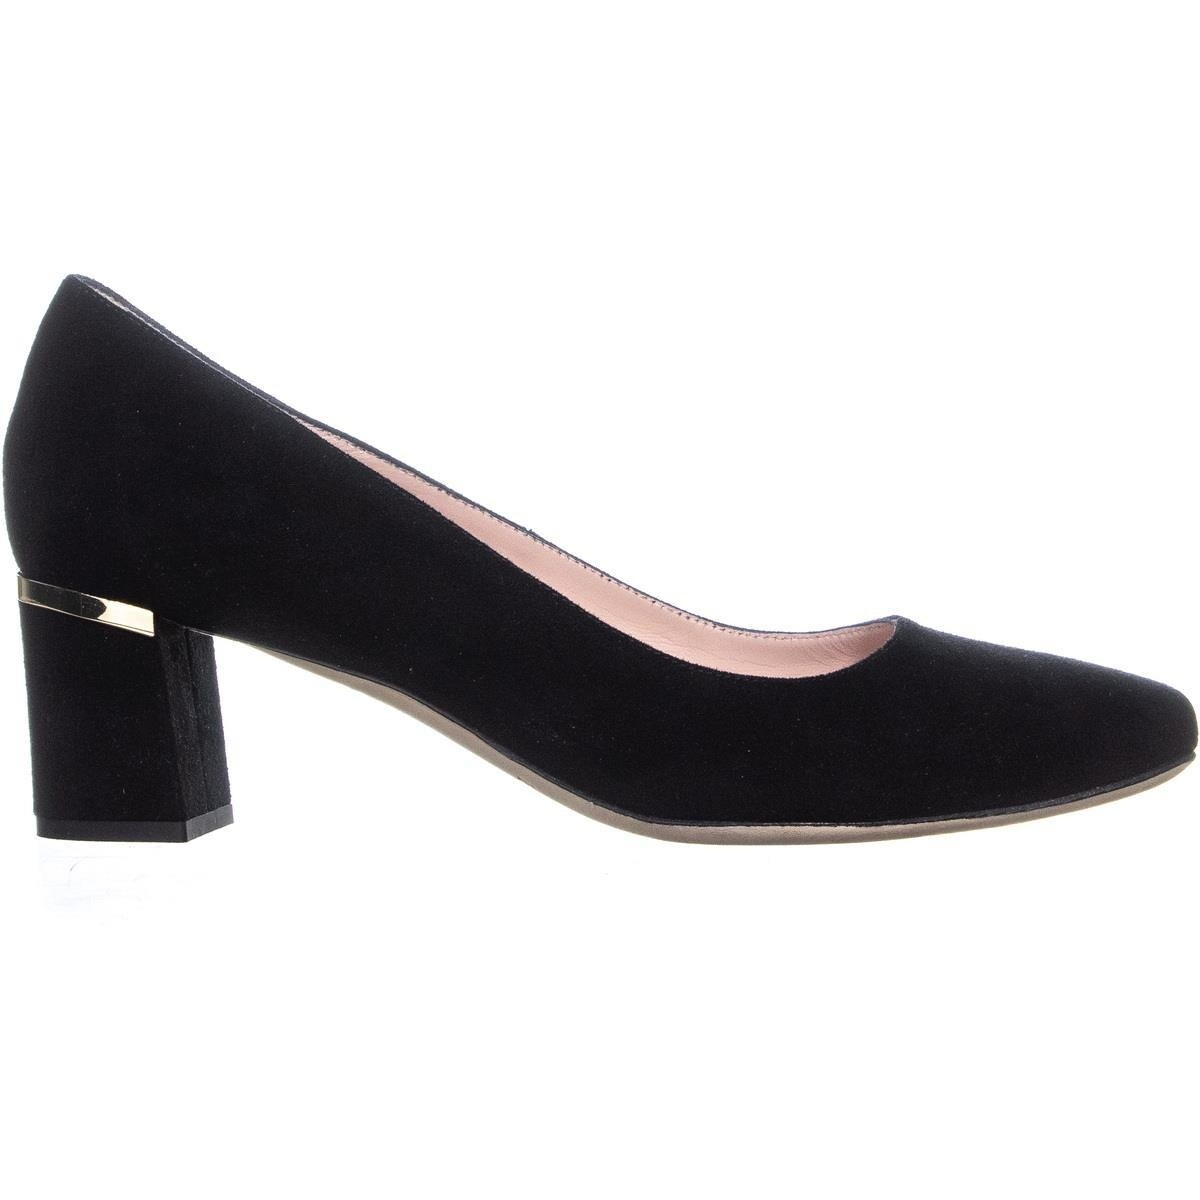 c9b3579747 Shop Kate Spade New York Dolores Too Kitten Heels, Black - 7 us - Free  Shipping Today - Overstock - 25459040